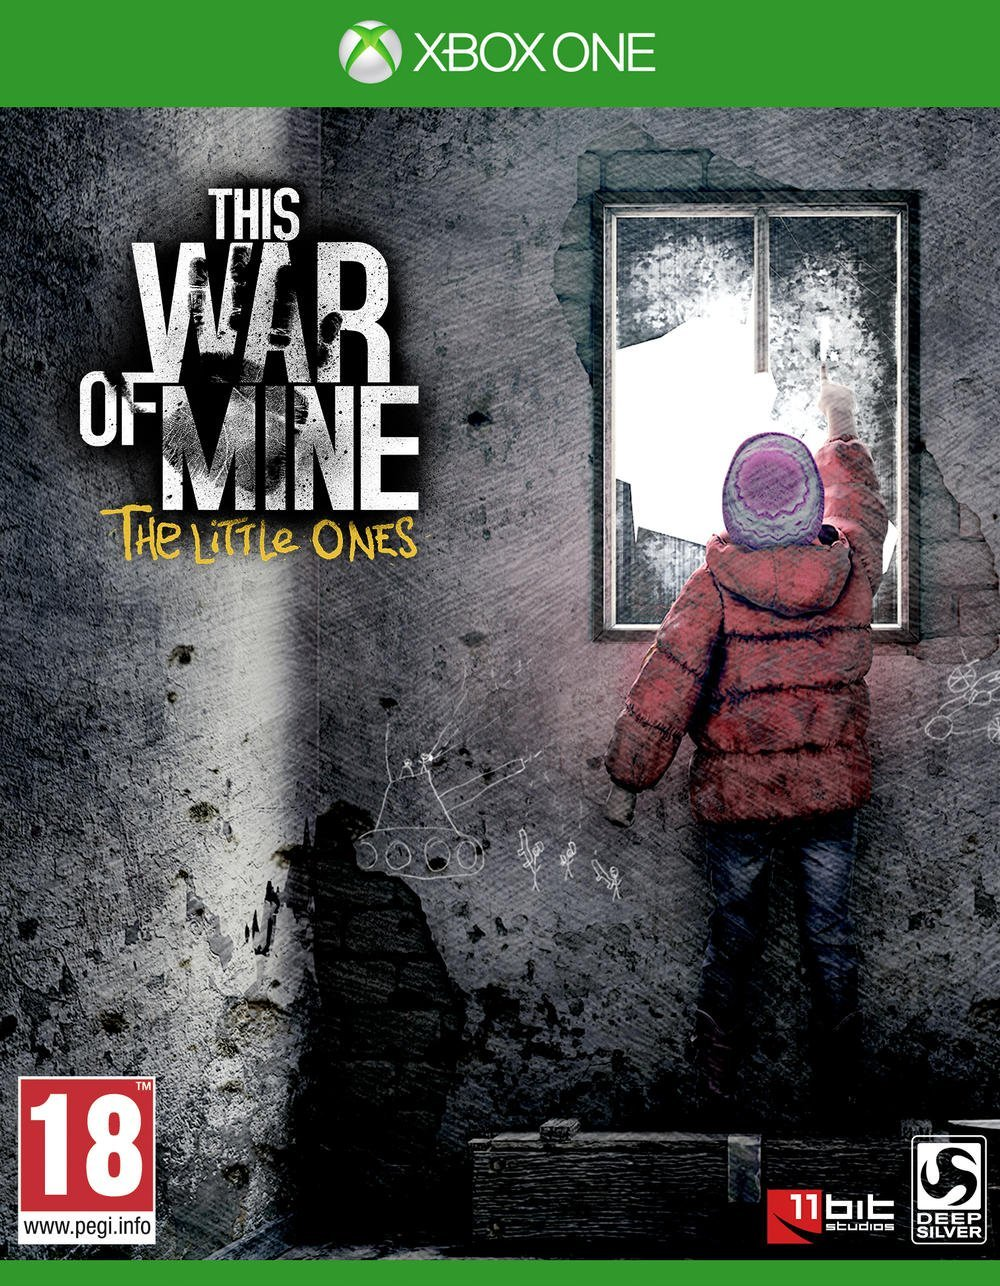 Retrouvez notre TEST :  This War of Mine: The Little Ones  - 16/20